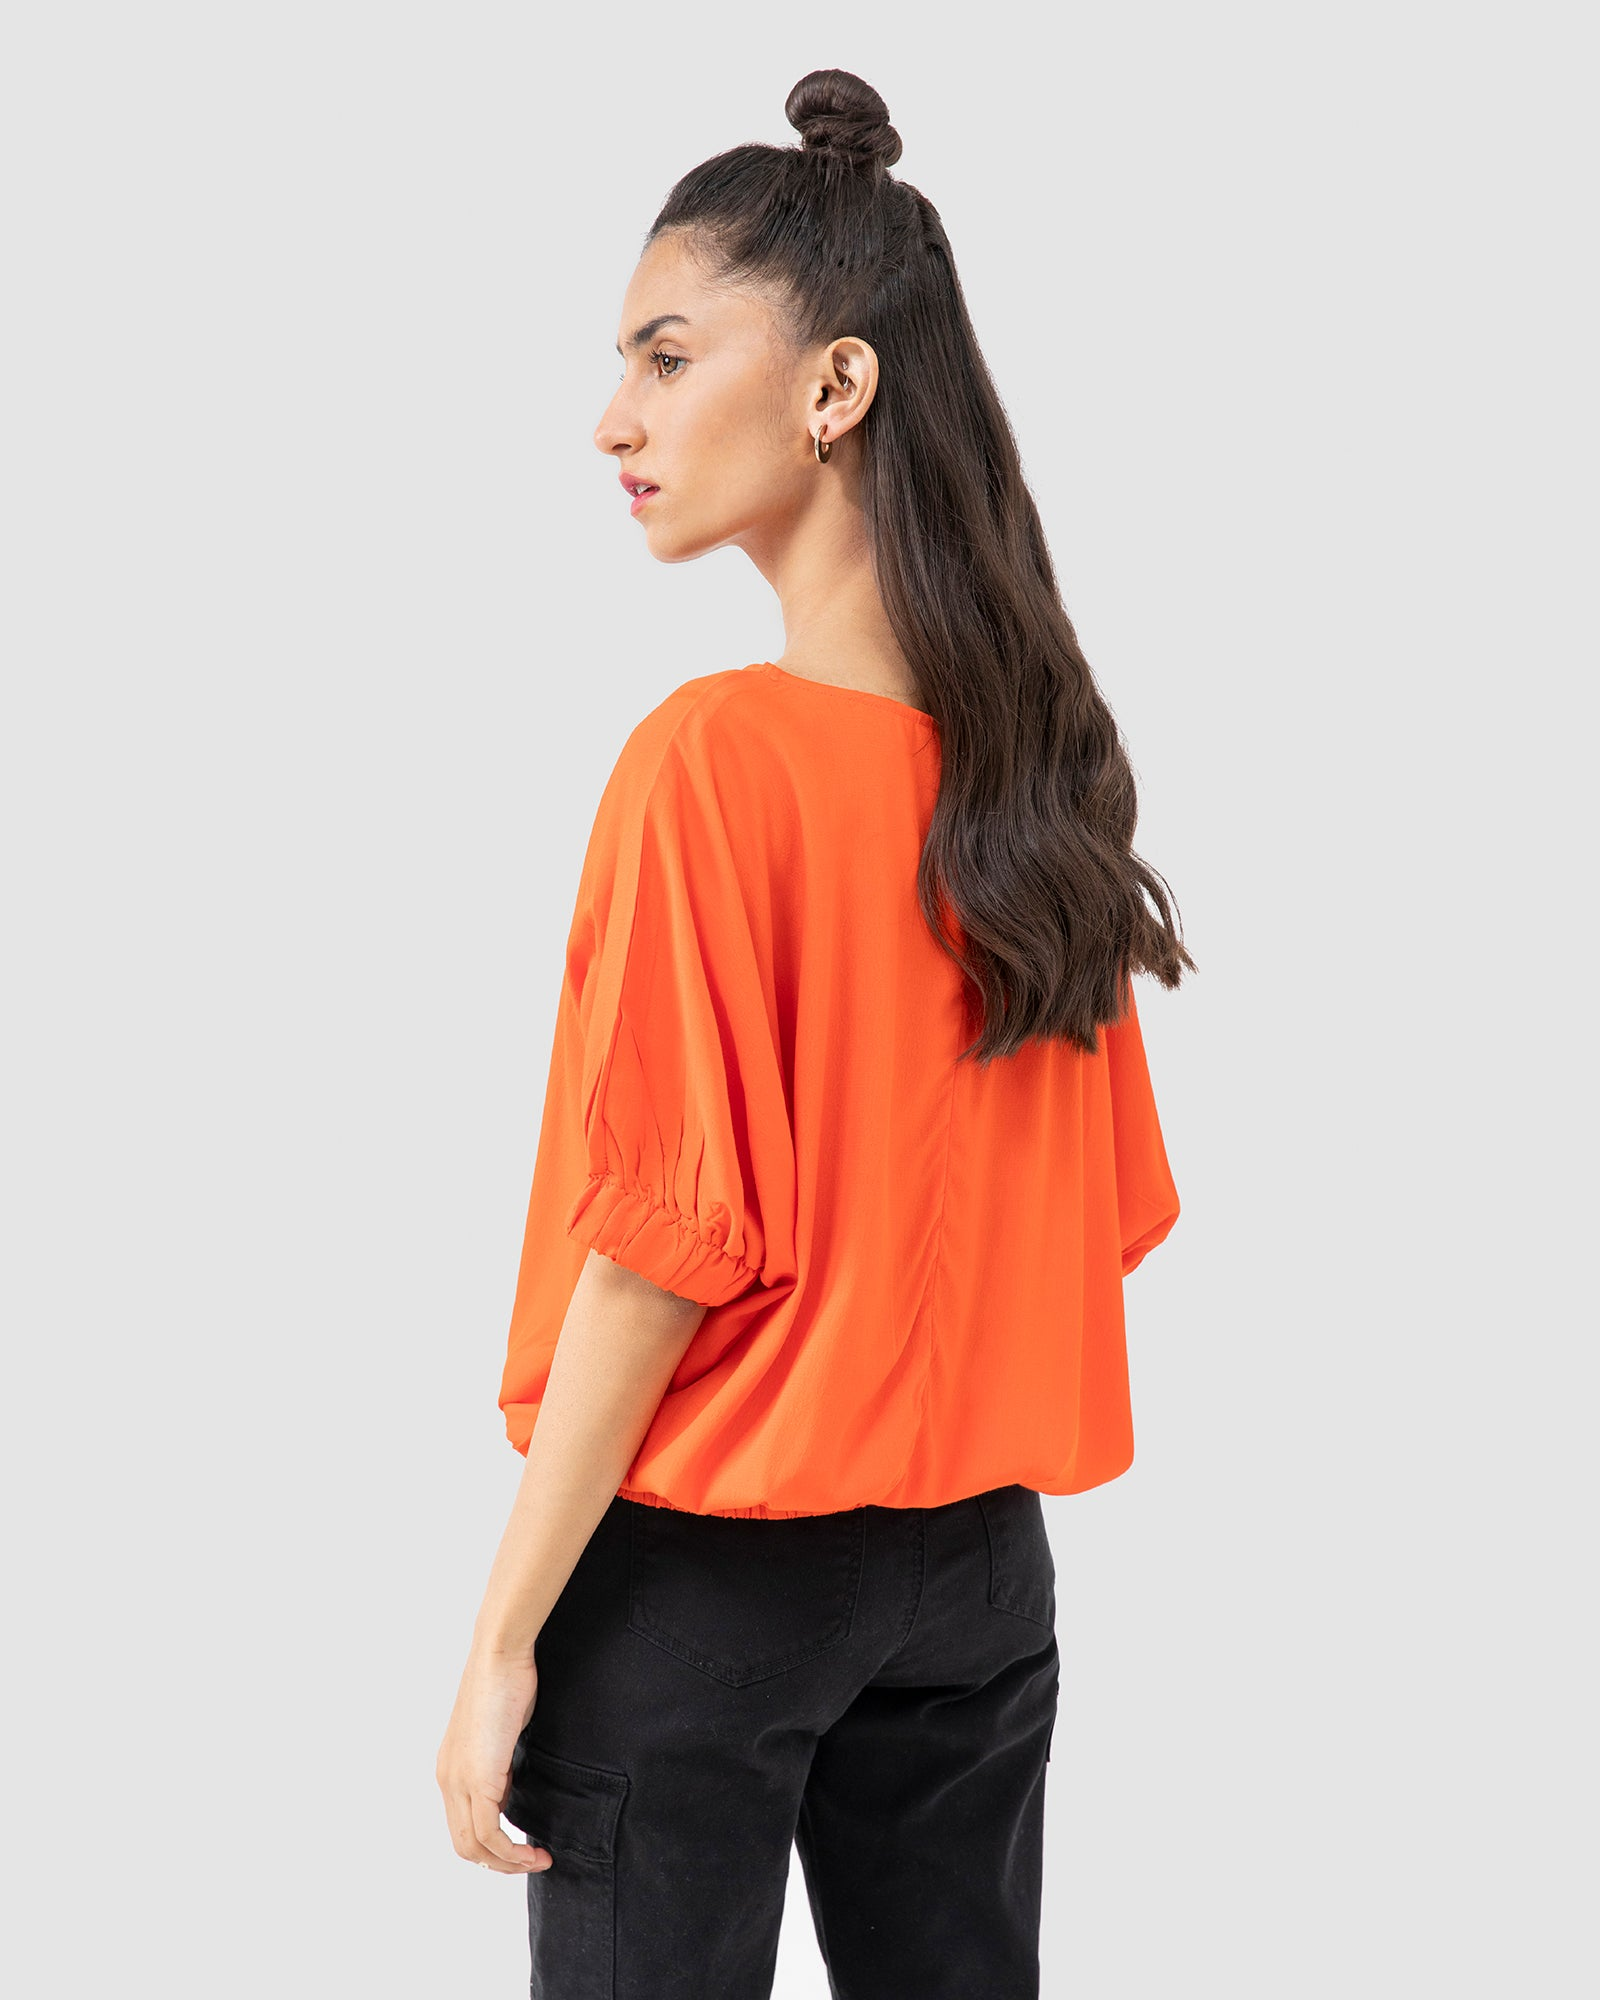 Blouse with Puffed Hems